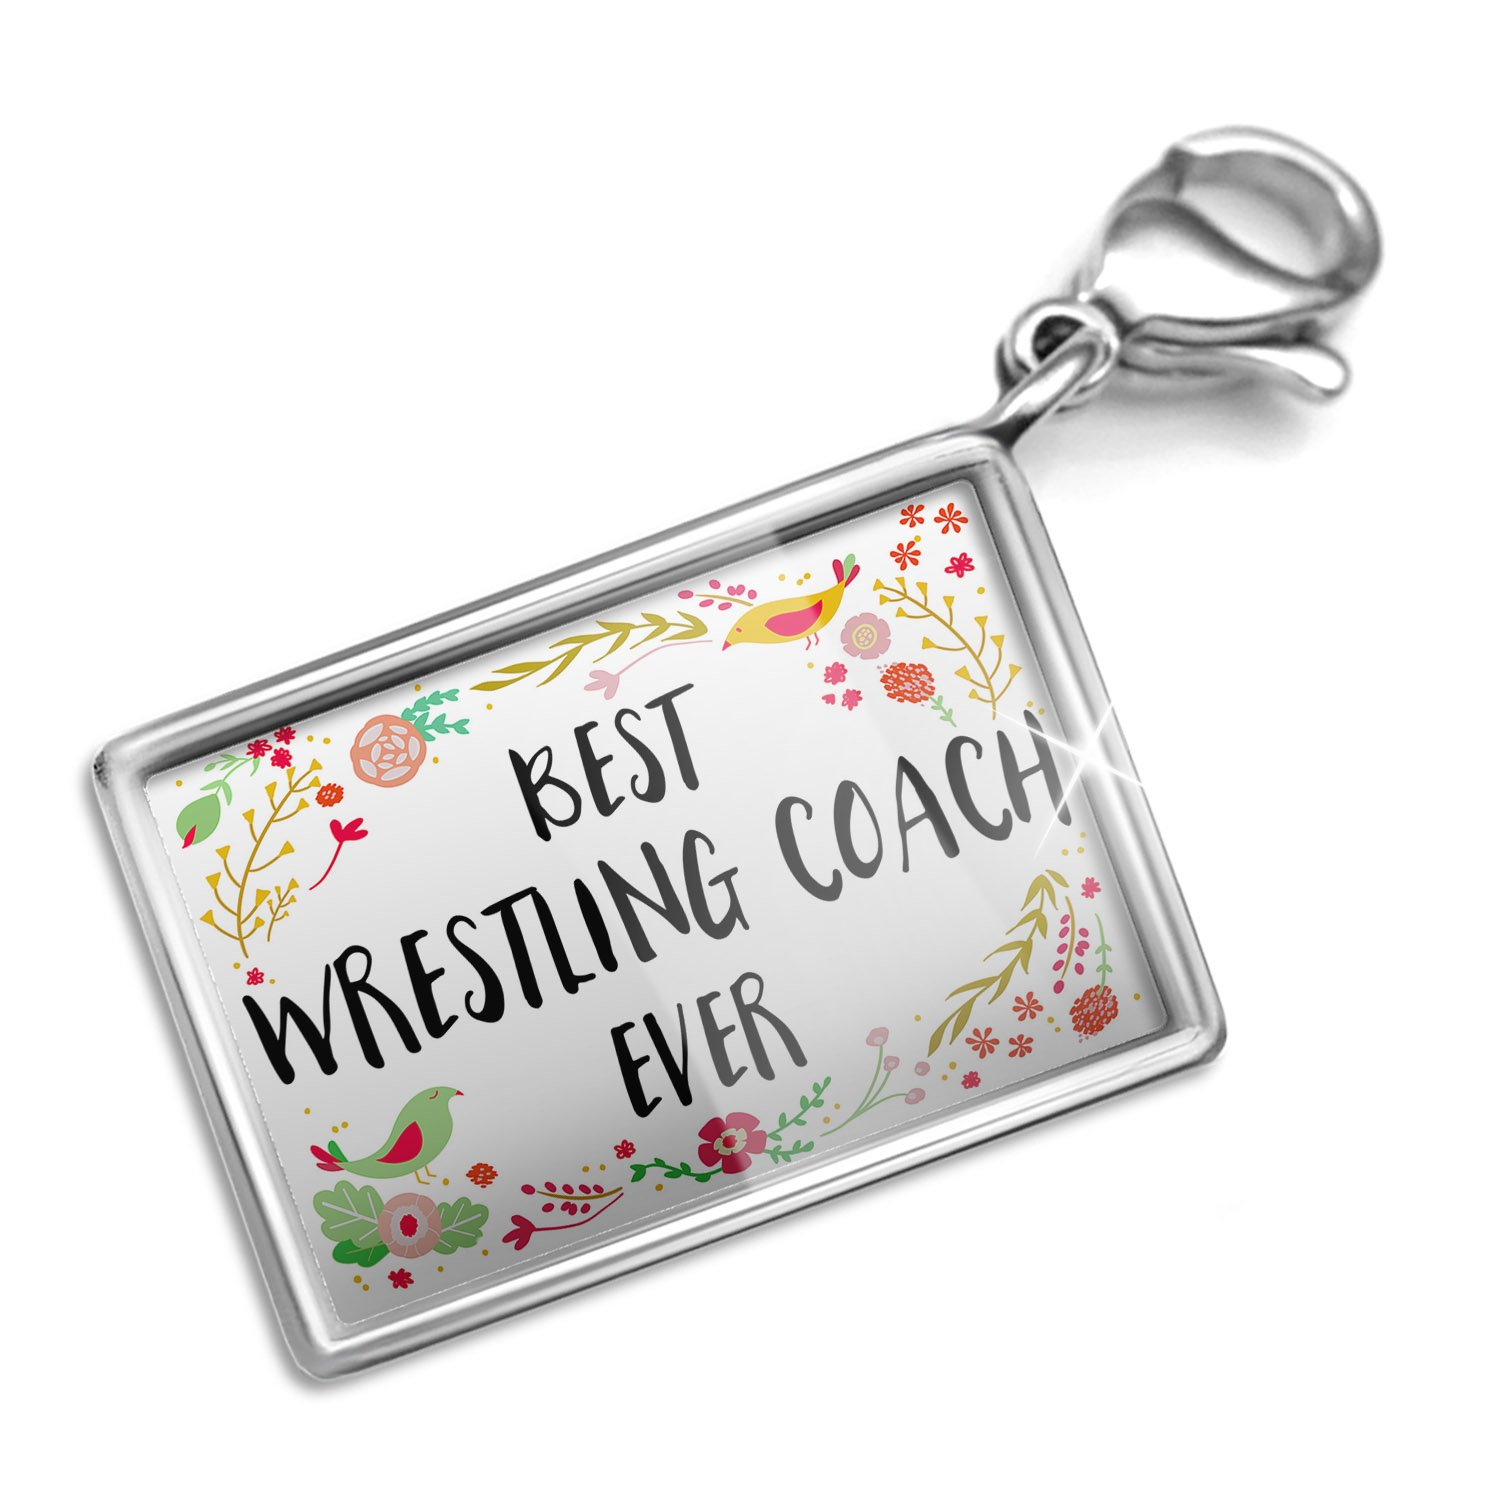 Clip on Charm & Bracelet Set Happy Floral Border Wrestling Coach Lobster Clasp by NEONBLOND